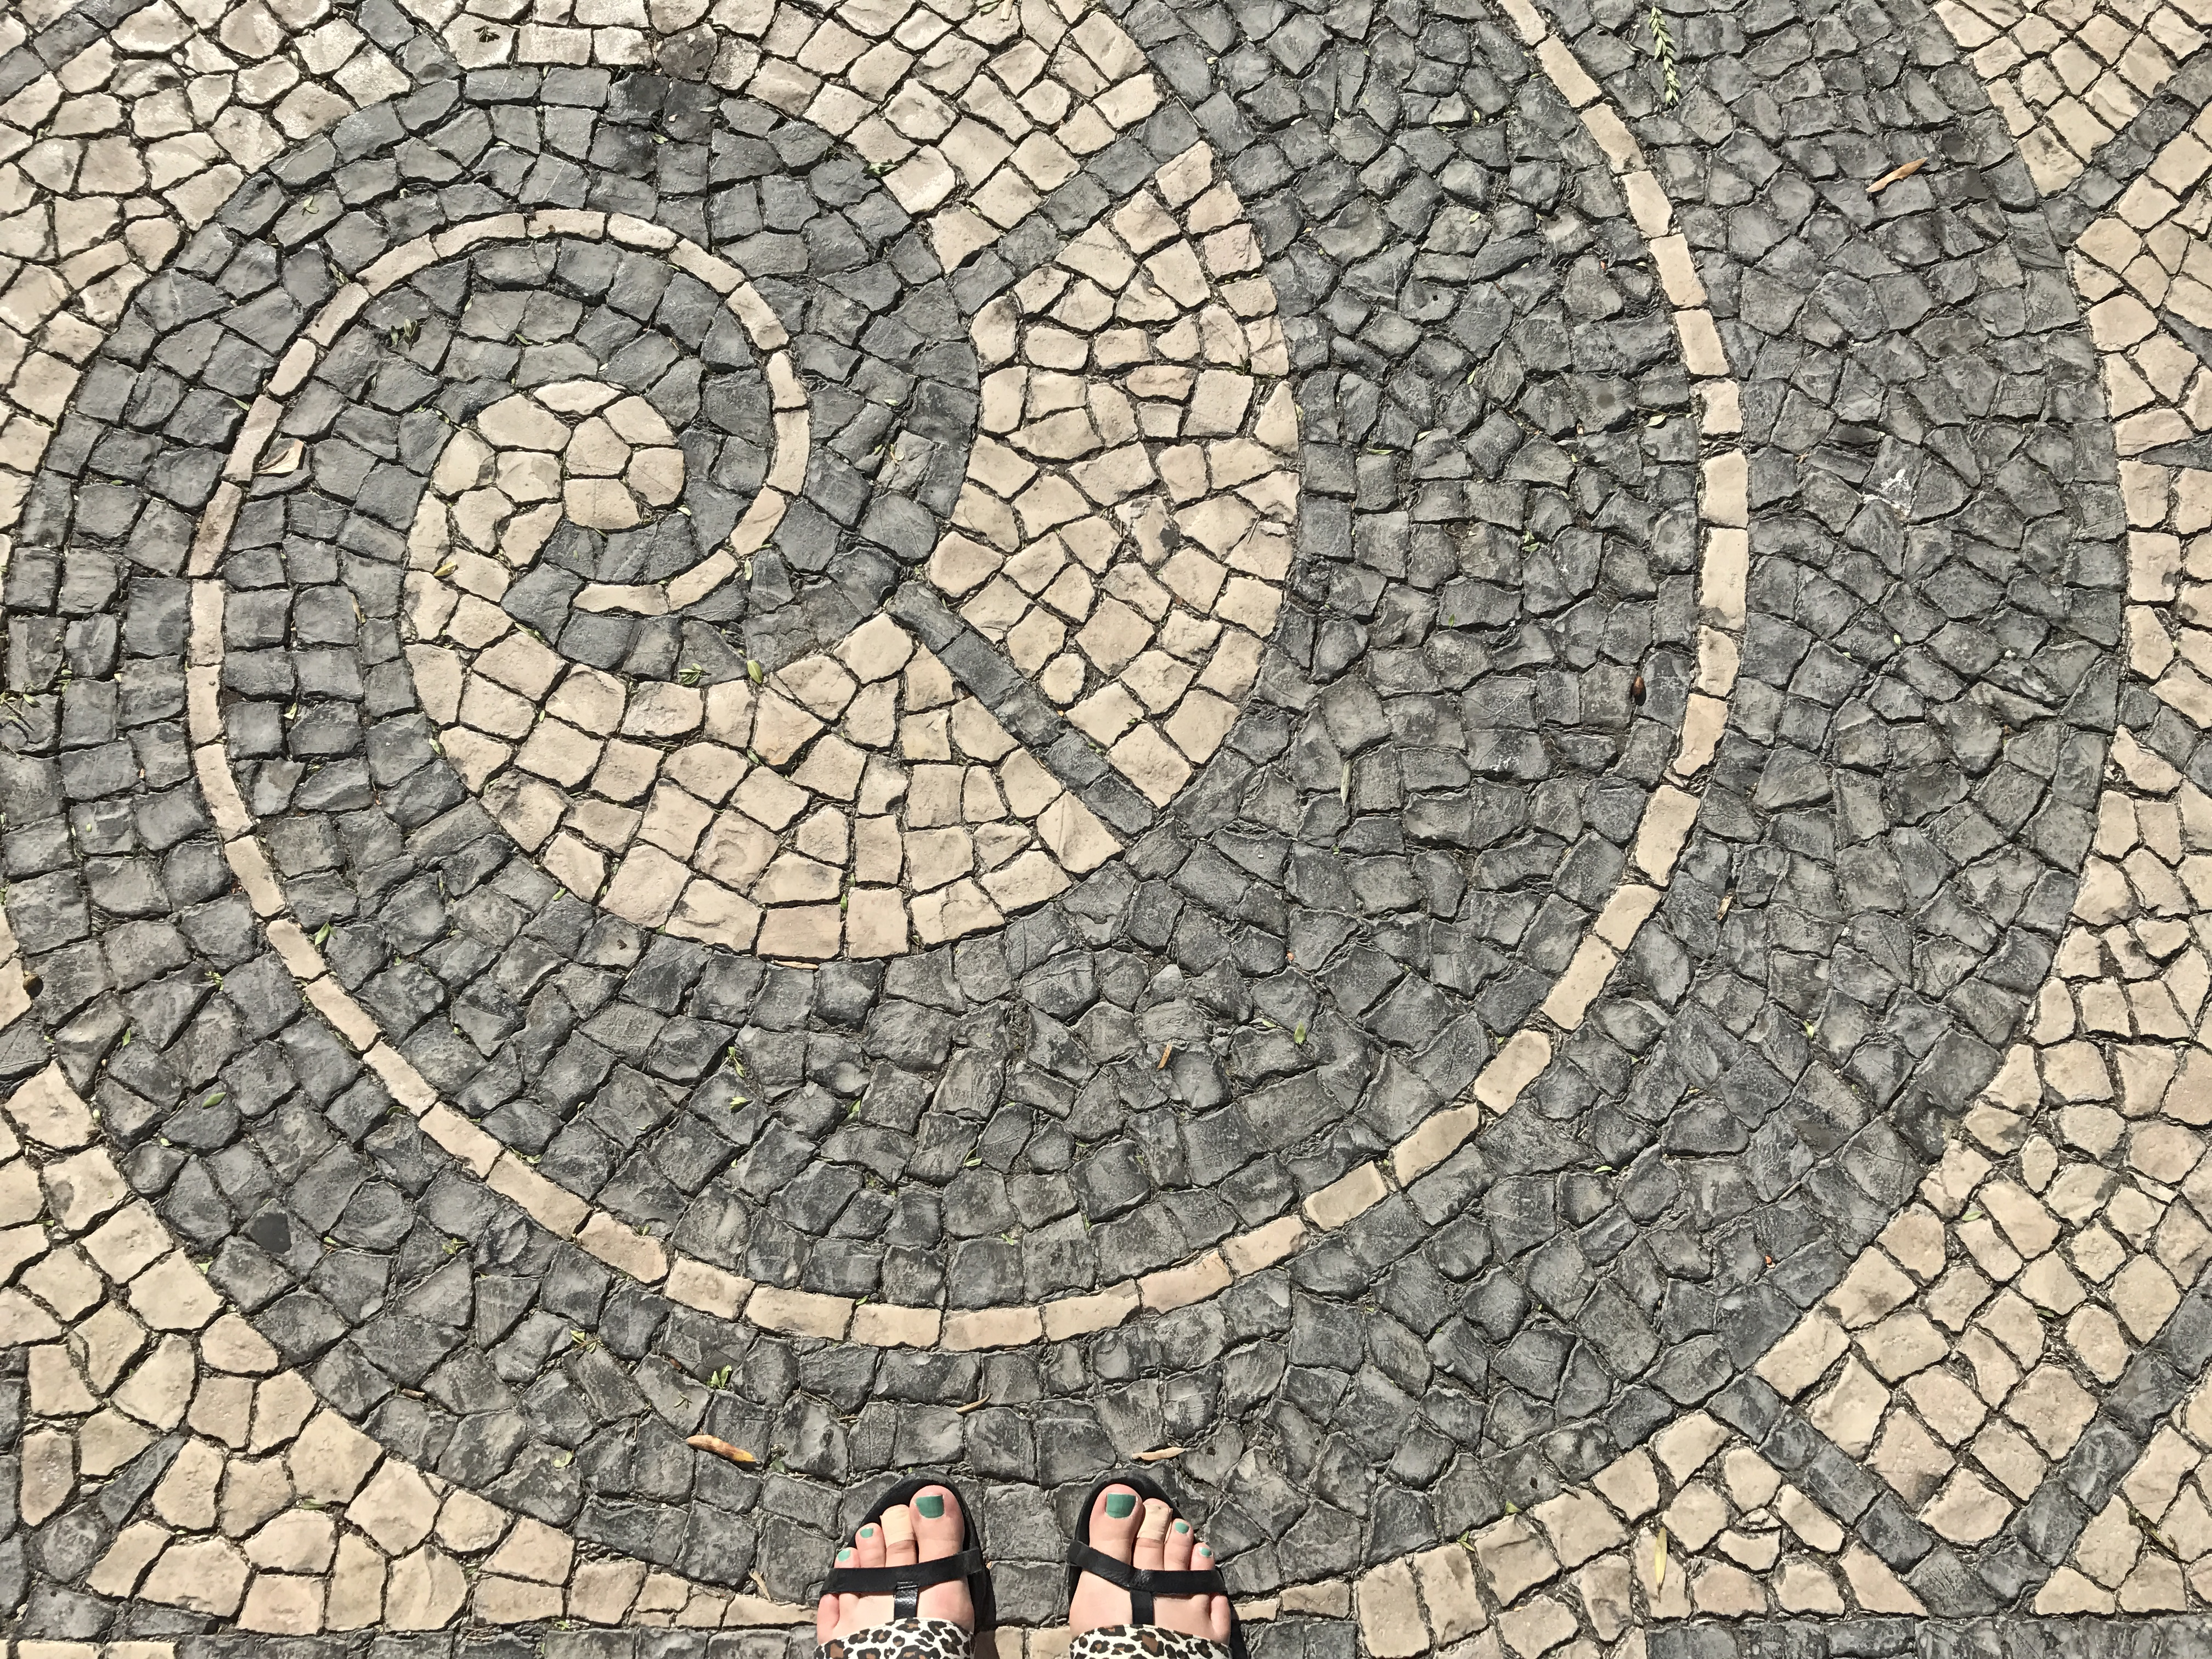 History jill kimball from the moment we arrived in lisbon we saw tiles everywhere they fit together in elaborate hand painted murals narrating lisbons maritime history in dailygadgetfo Images